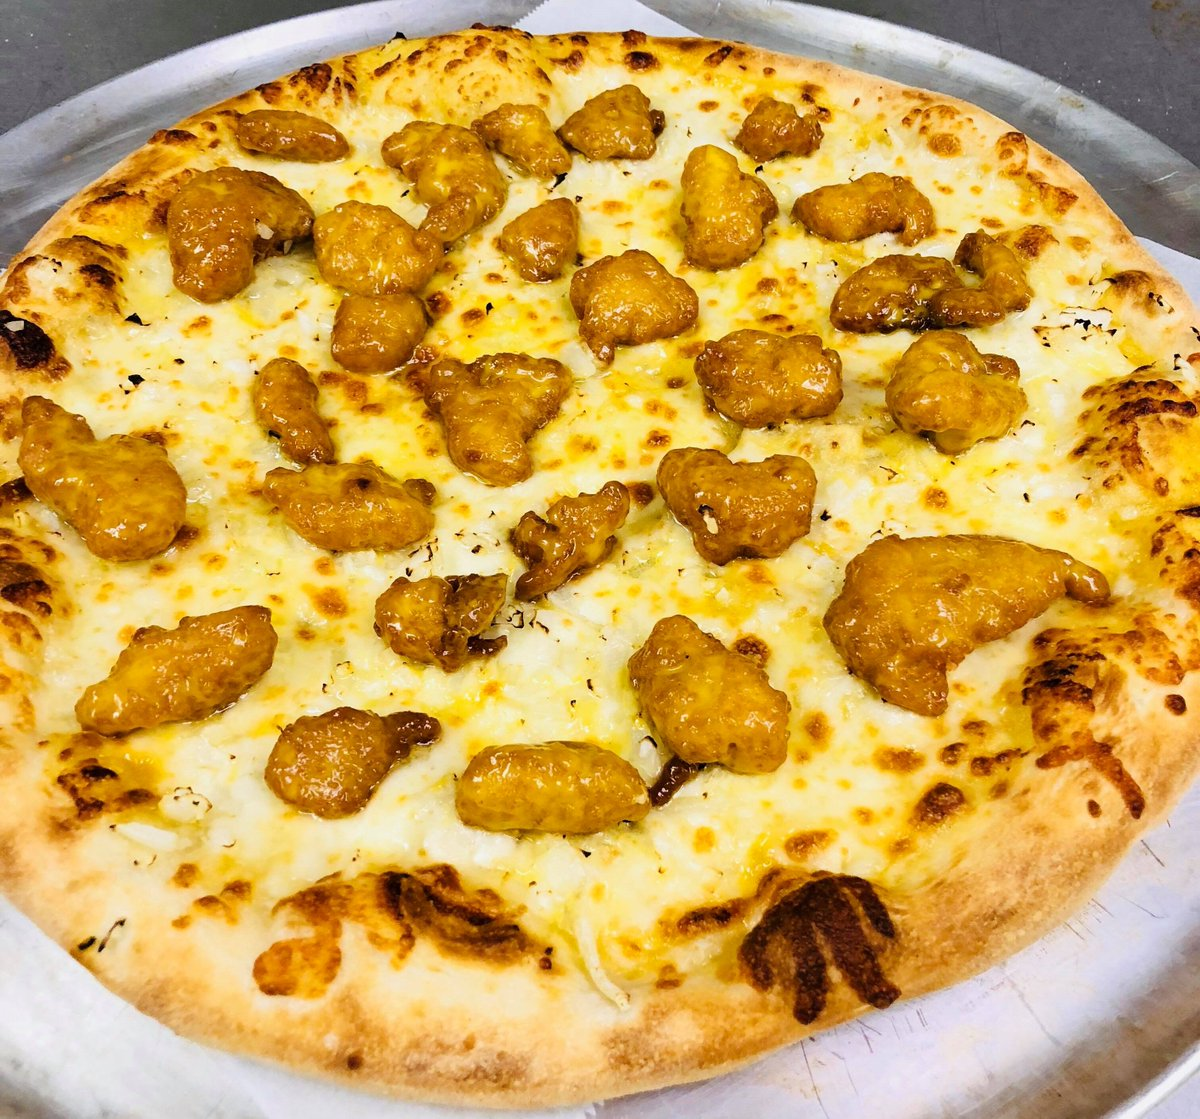 Queen Pizza En Twitter Mustard As A Pizza Topping Challenge Accepted Try Our New Honey Mustard Chicken Pizza We Start With Our Homemade Honey Mustard Then Layer With Grande Cheese Crispy Chicken And